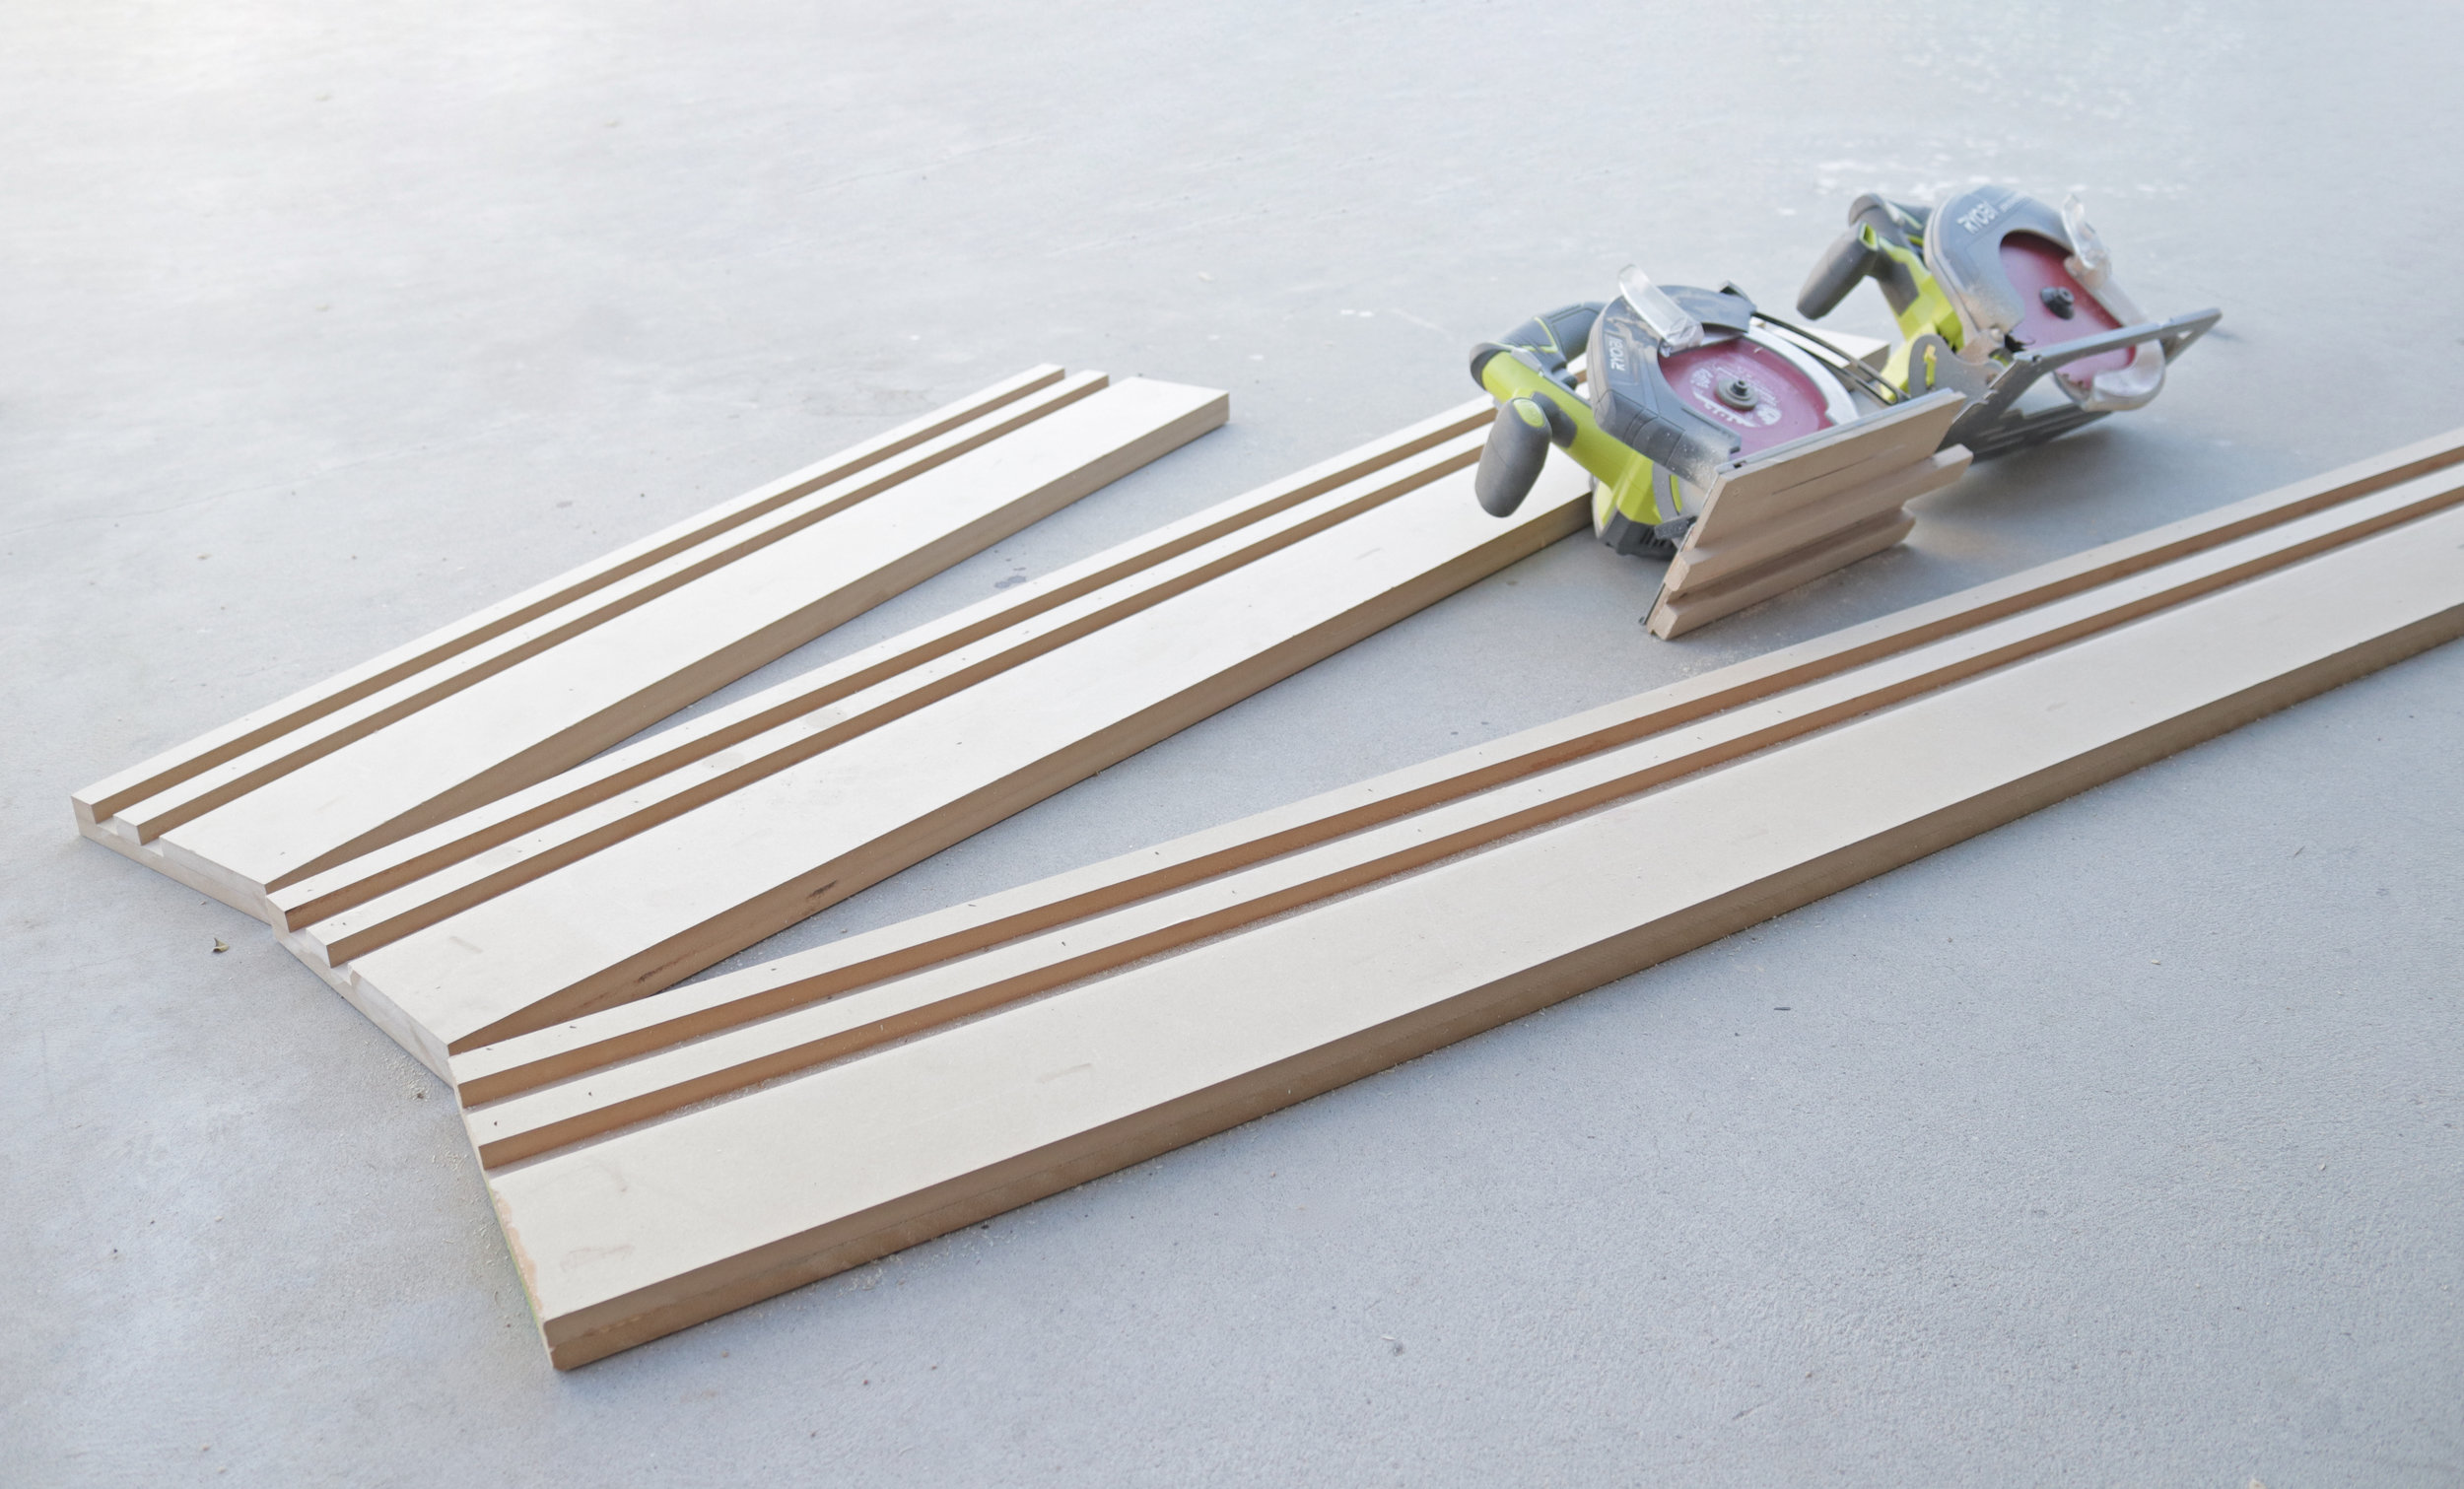 DIY Track Saw Guide for standard Circular Saw. By: Mike Montgomery | Modern Builds